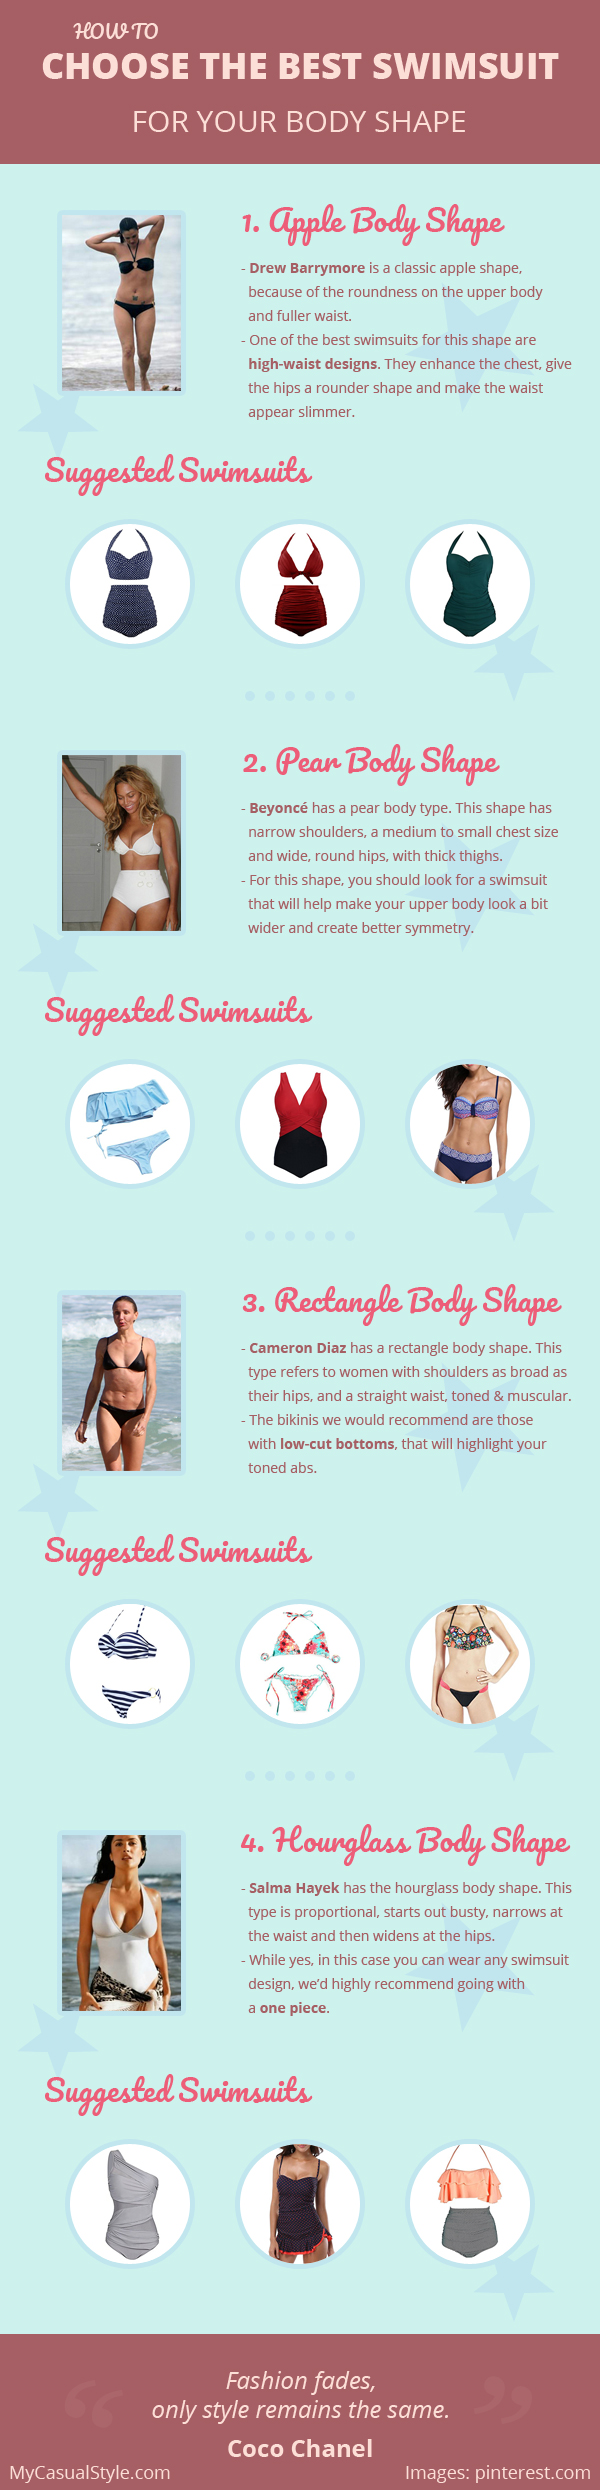 Choosing the Right Swimsuit: Because Beauty Comes in All Shapes and Sizes! - Infographic